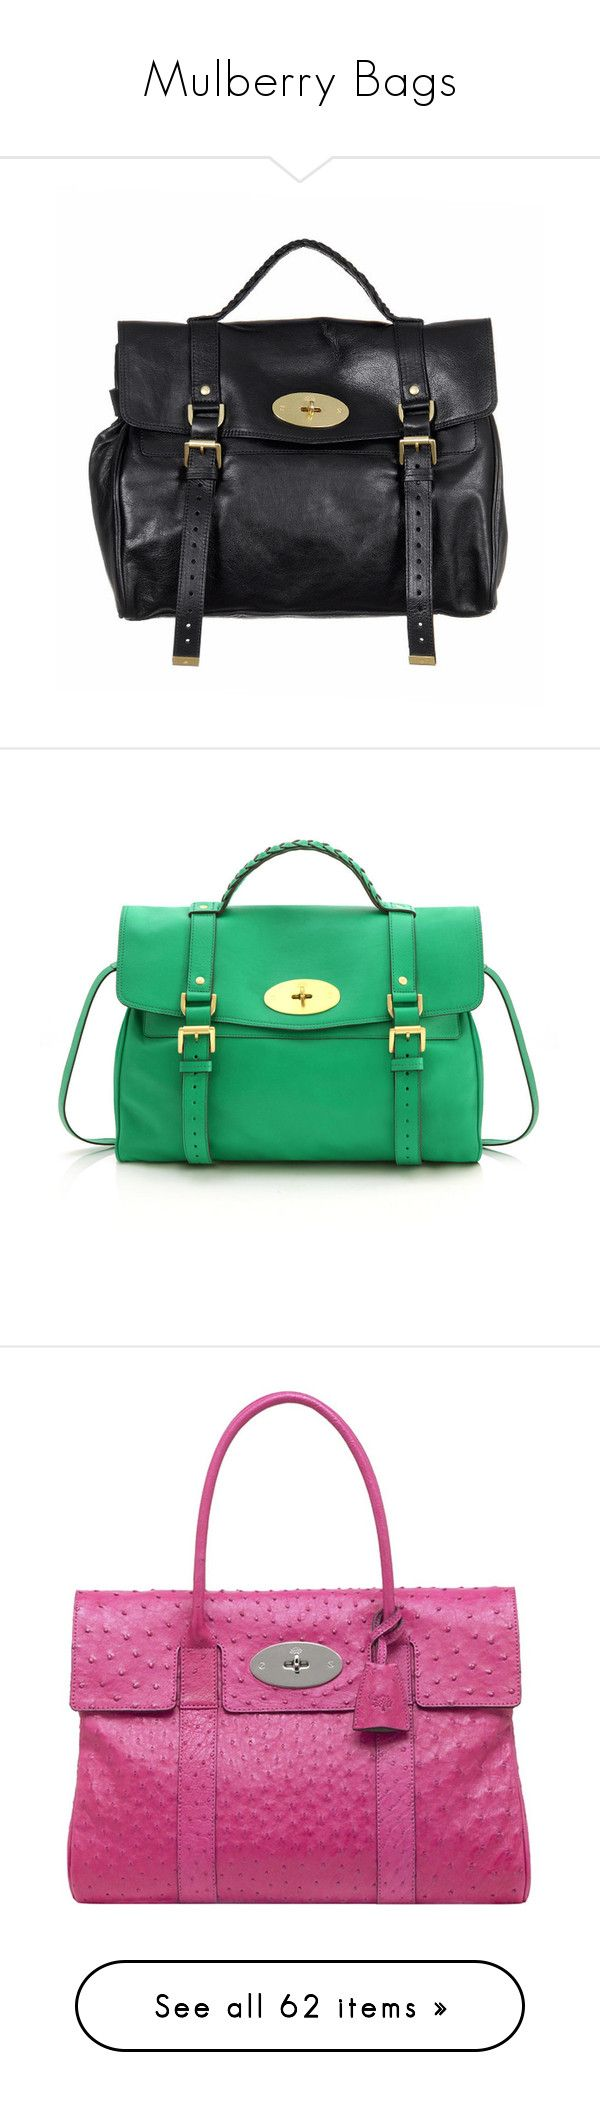 """""""Mulberry Bags"""" by gabriela2105 ❤ liked on Polyvore featuring bags, messenger bags, purses, bolsas, borse, mulberry, women, satchel messenger bag, satchel handbags and courier bag"""